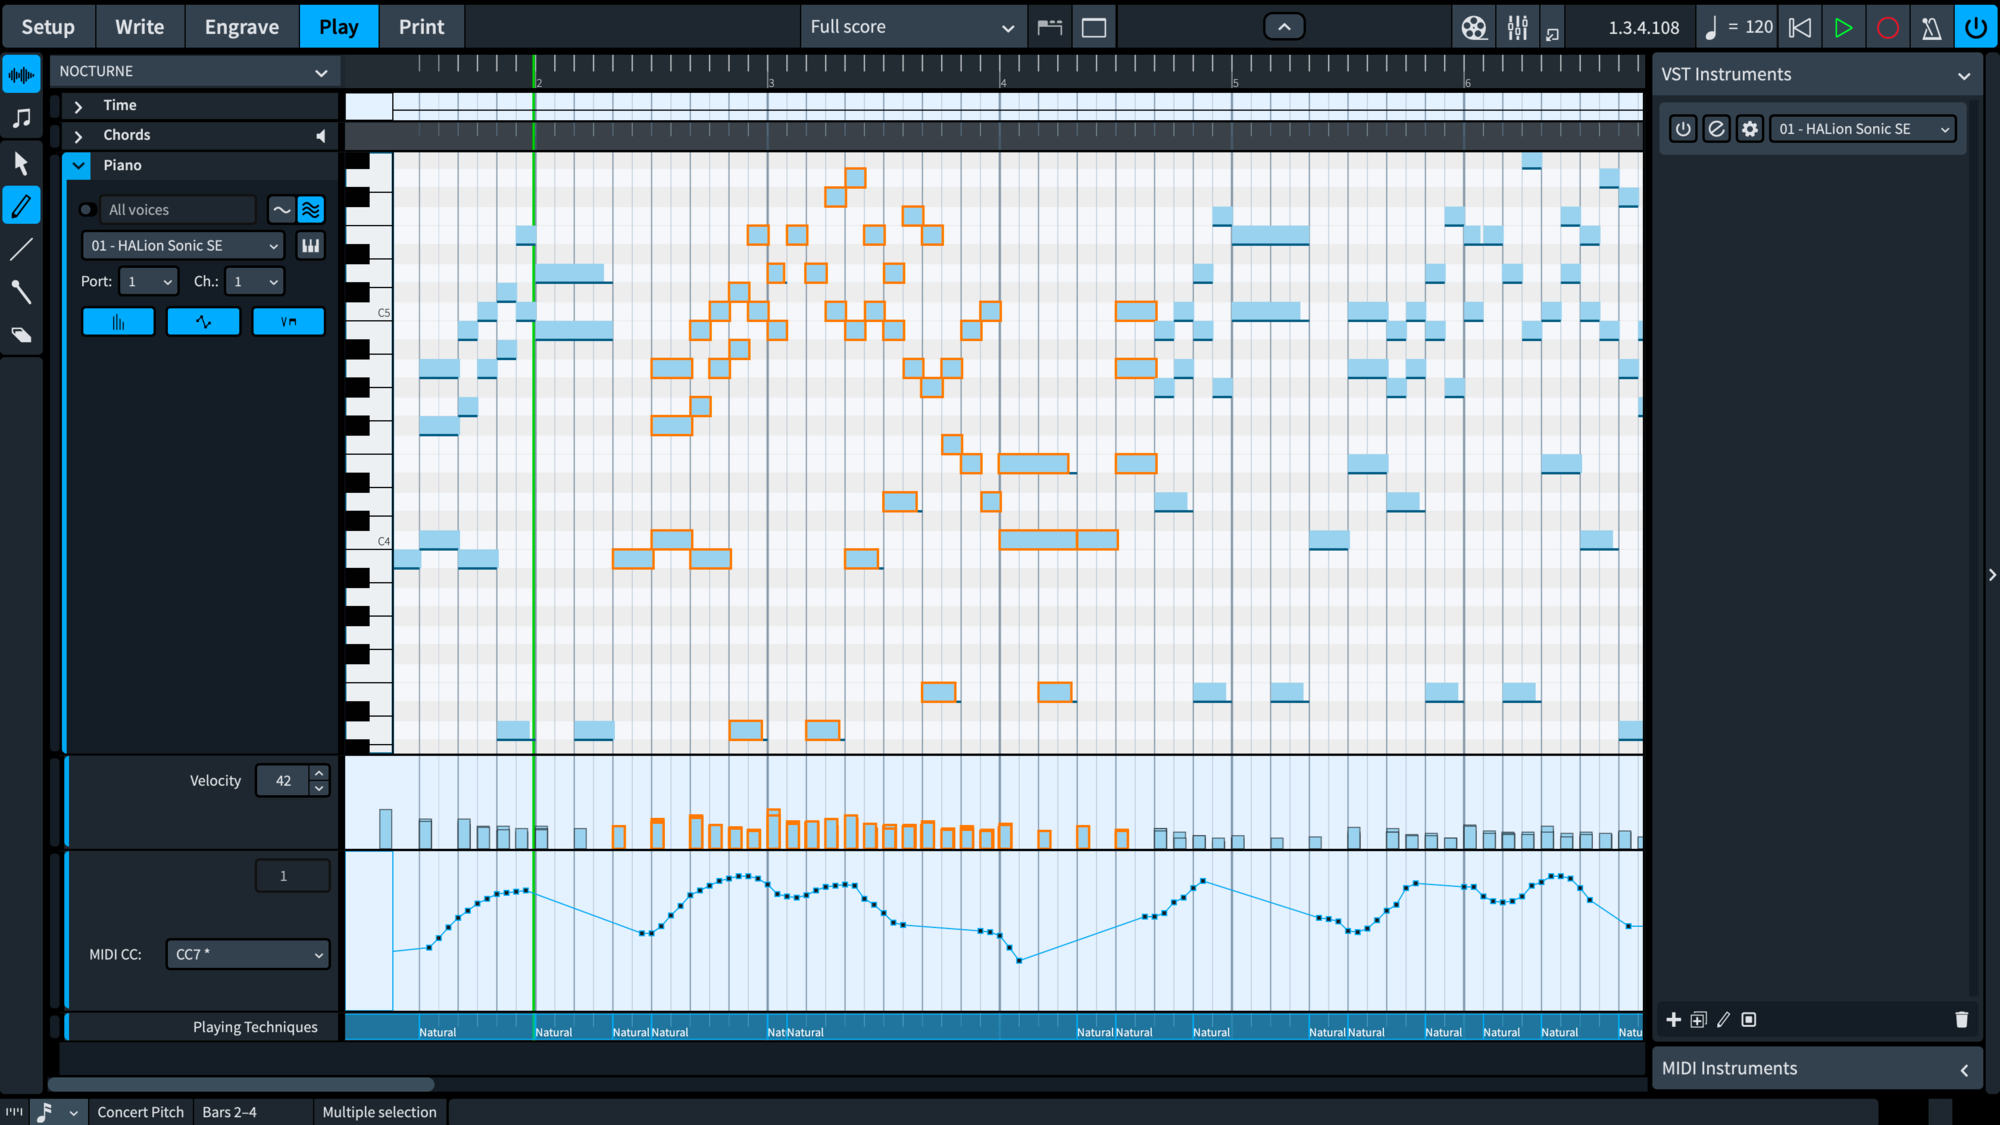 Compare the versions of Dorico: Elements and Pro | Steinberg